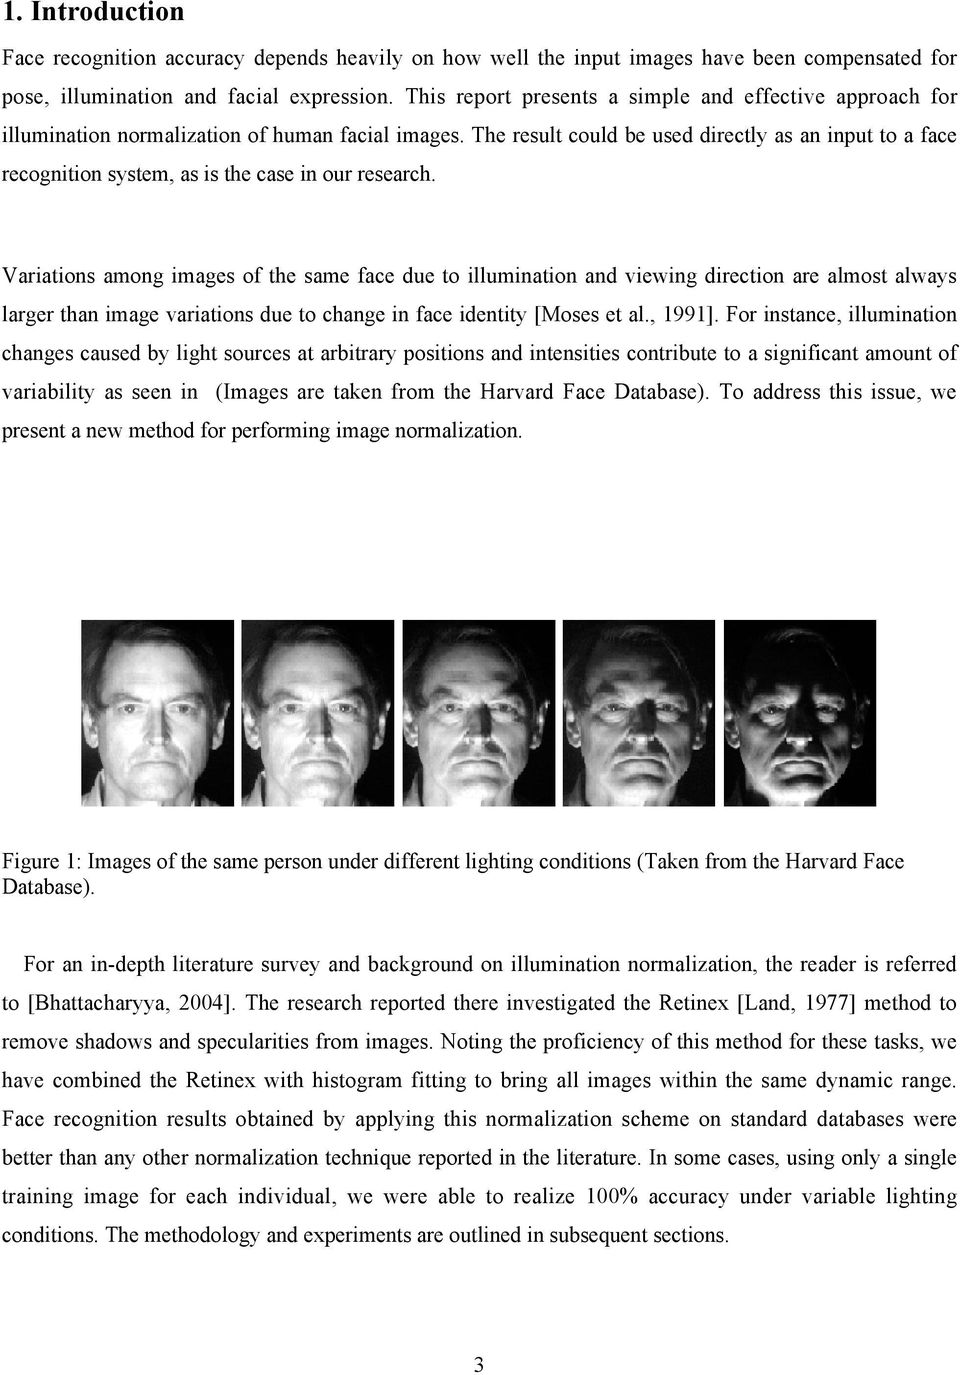 The result could be used directly as an input to a face recognition system, as is the case in our research.